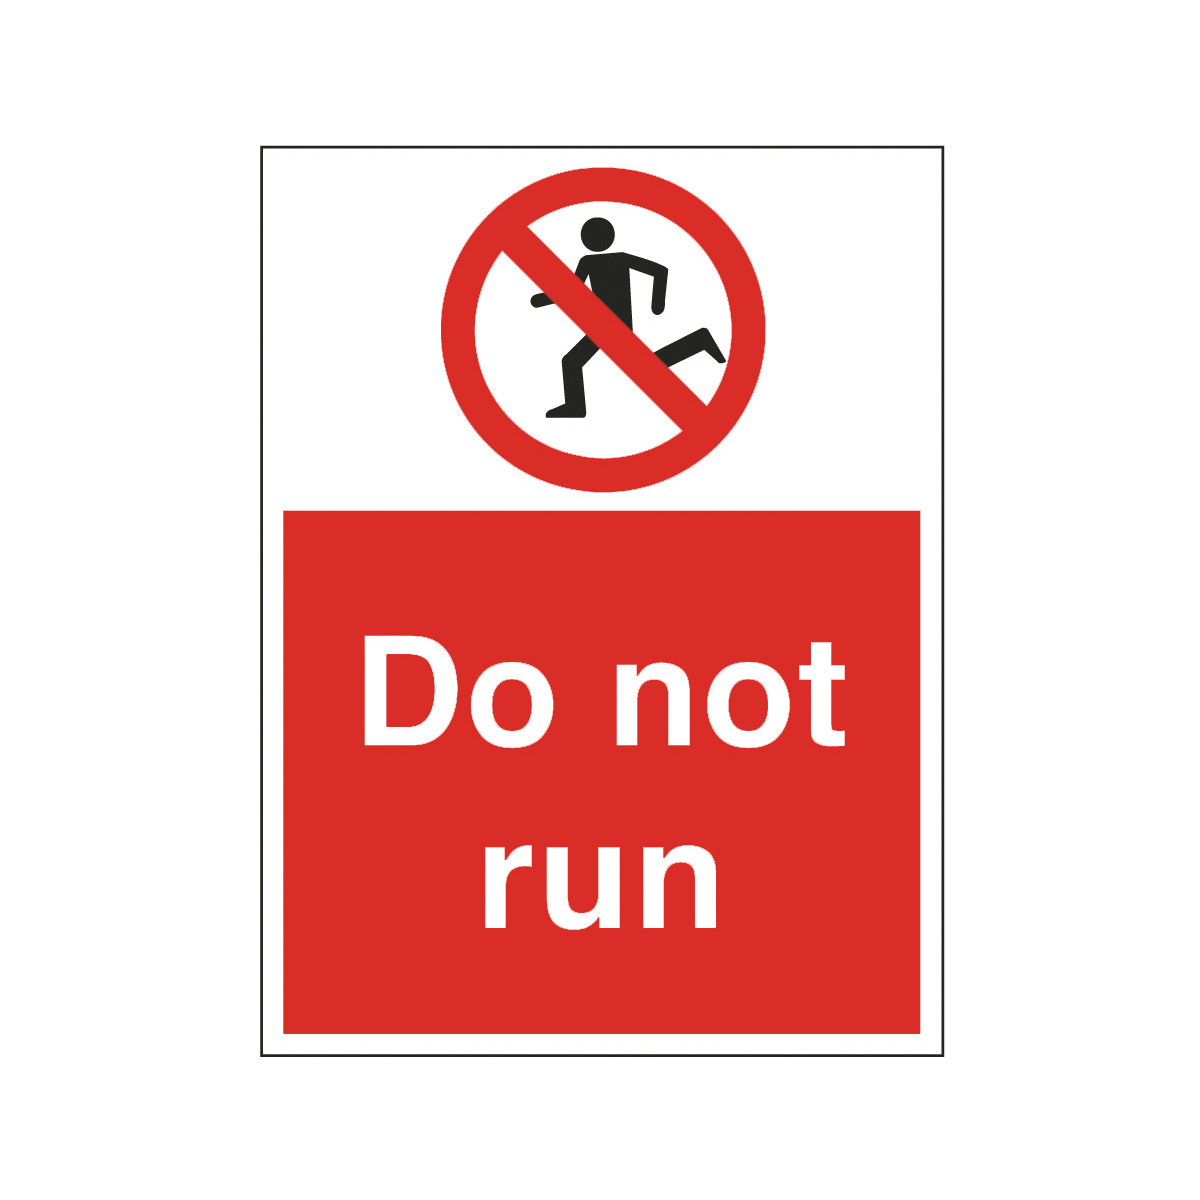 Do Not Run Safety Signs Symbols Free Cliparts That You Can.